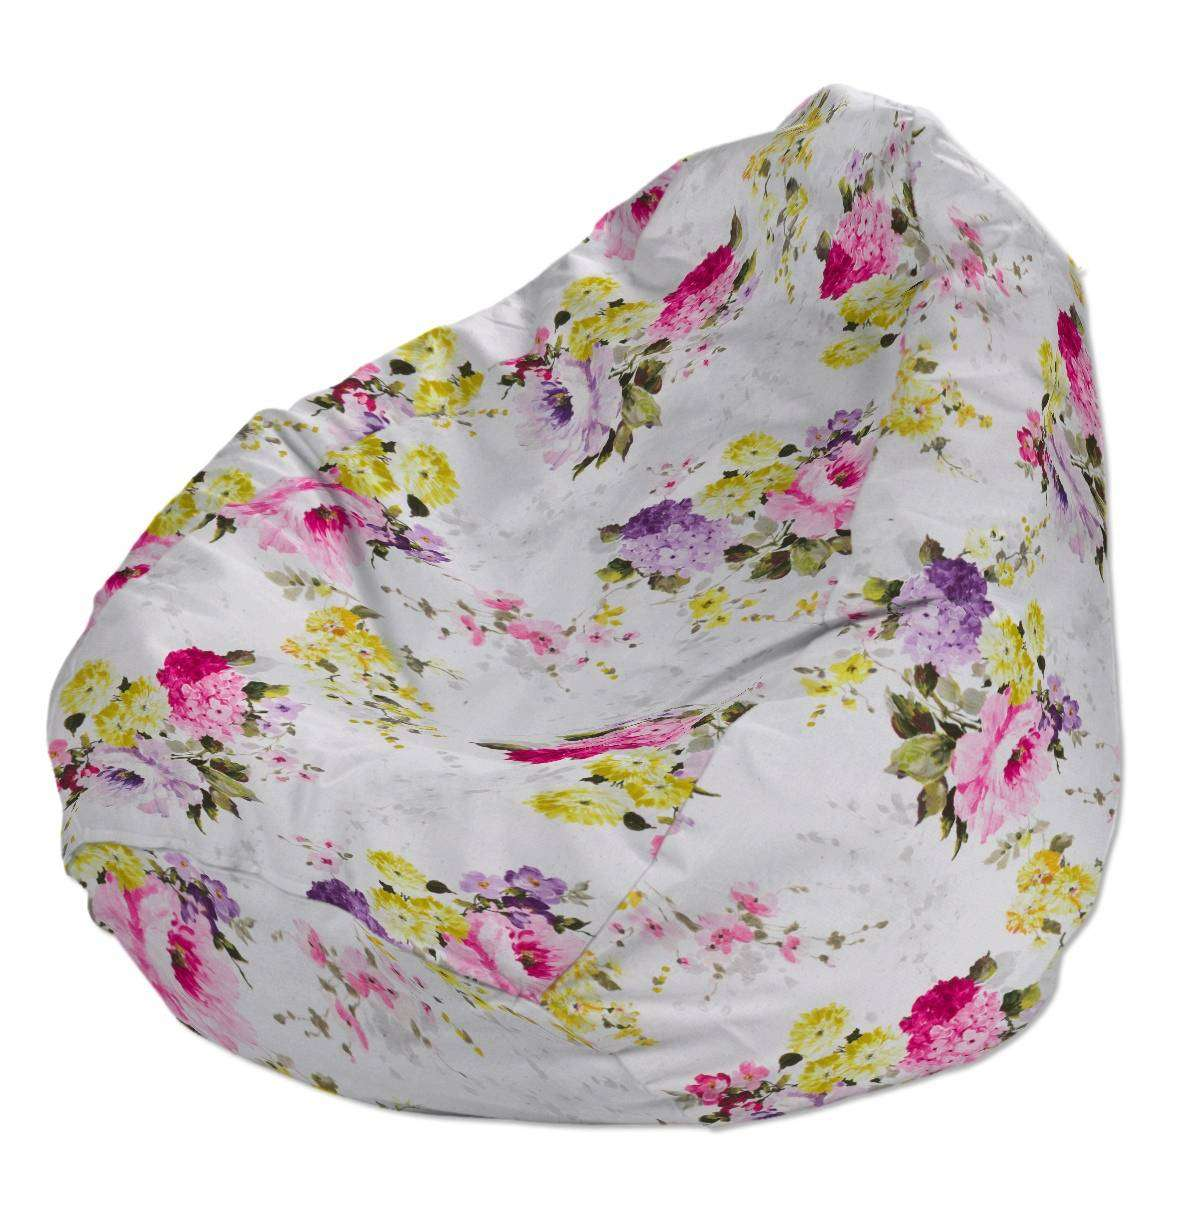 Beanbag Ø50 x 85 cm (20 x 33,5 inch) in collection Monet, fabric: 140-00